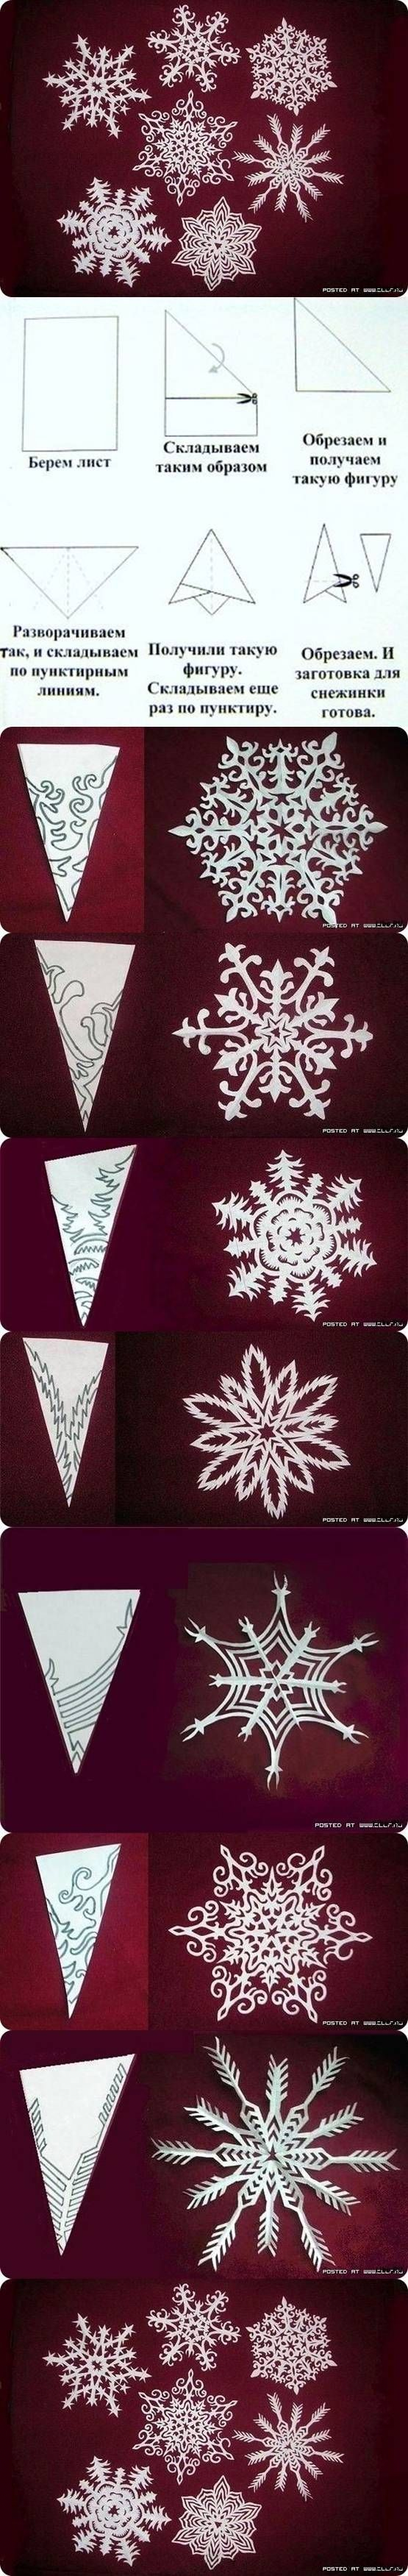 DIY Snowflakes of Paper by suzannescott50